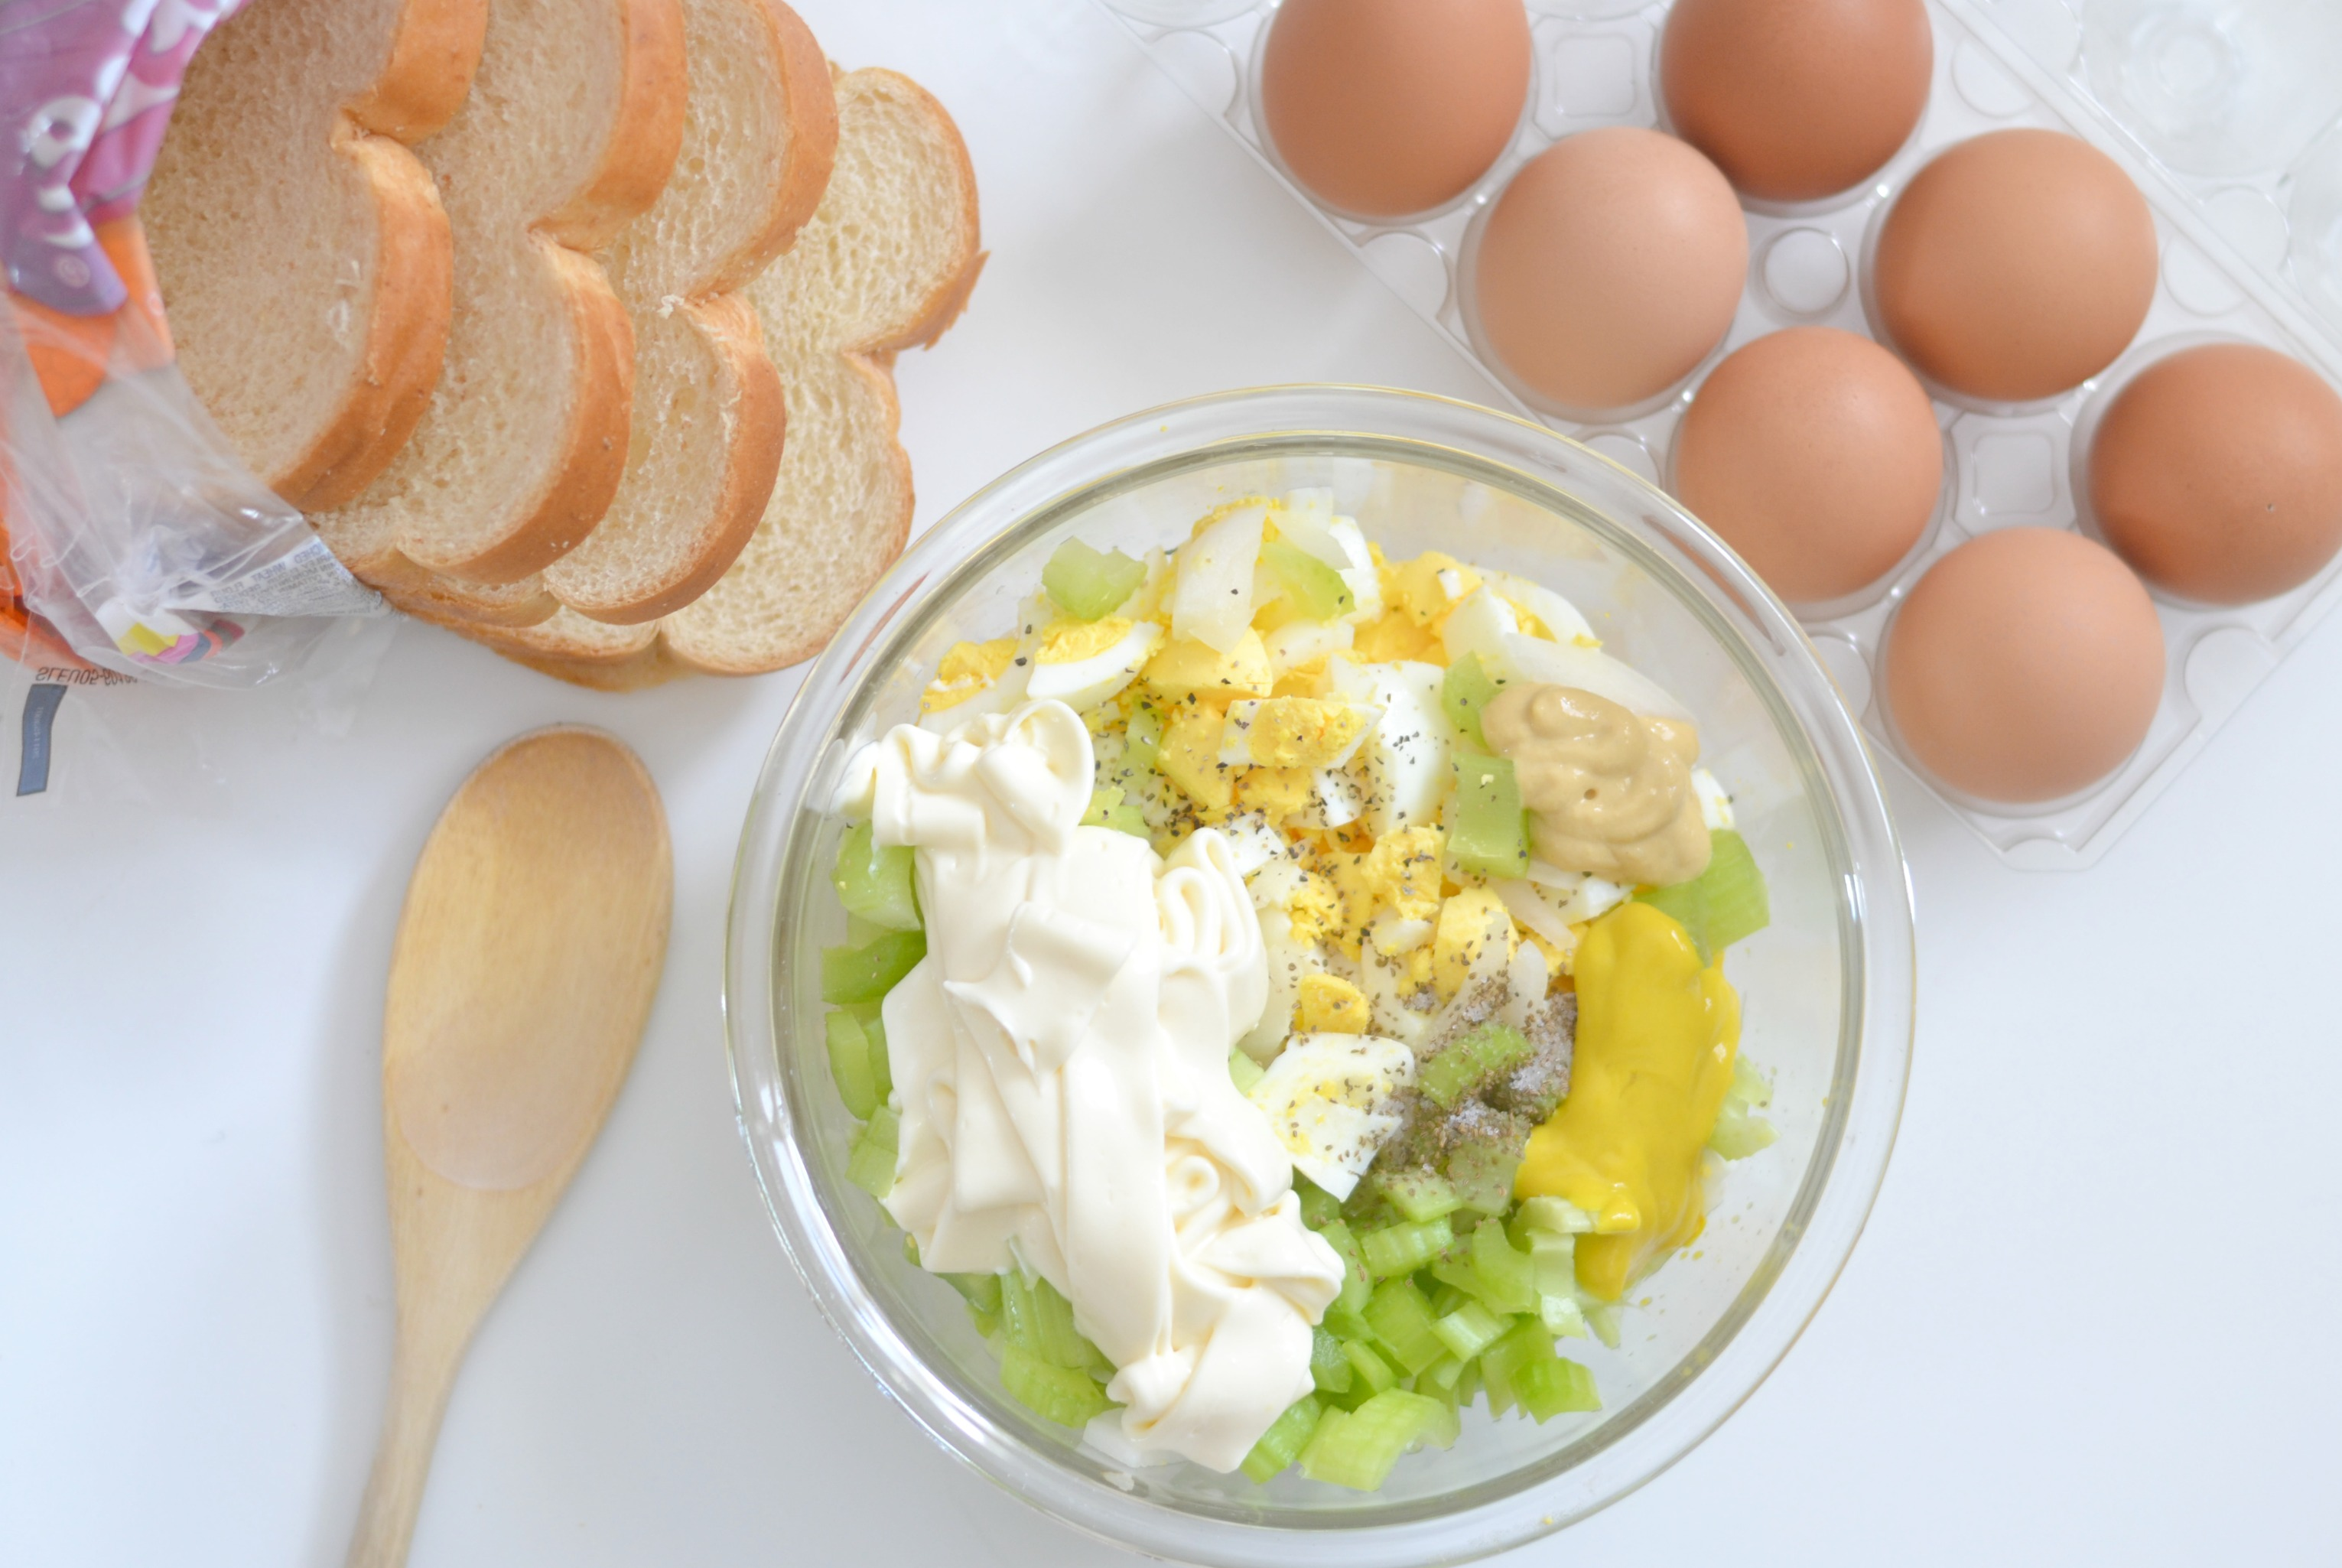 Easy & Delicious Egg Salad, egg salad recipe, egg salad, easy egg salad recipe, the best egg salad recipe, egg salad sandwich, how to make egg salad, sandwiches,